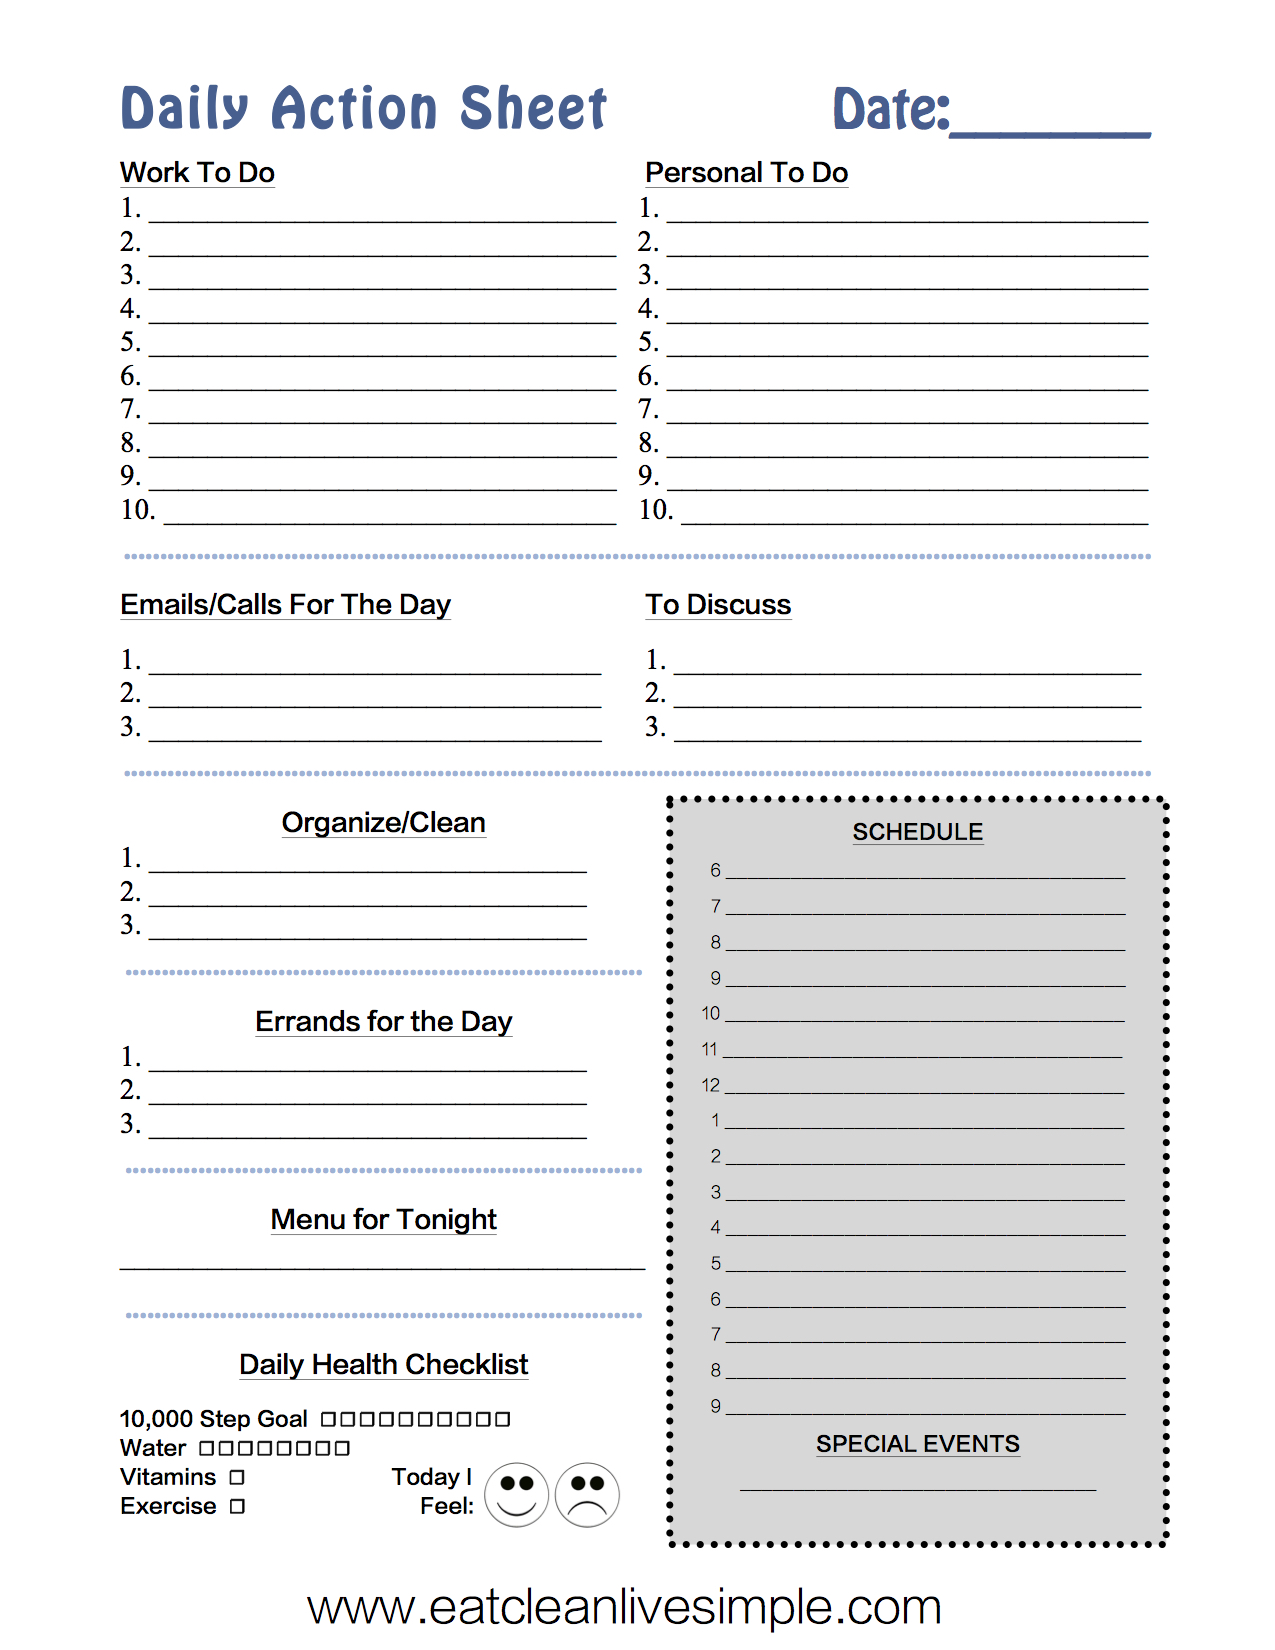 How to Keep You Day Organized - www.eatcleanlivesimple.com